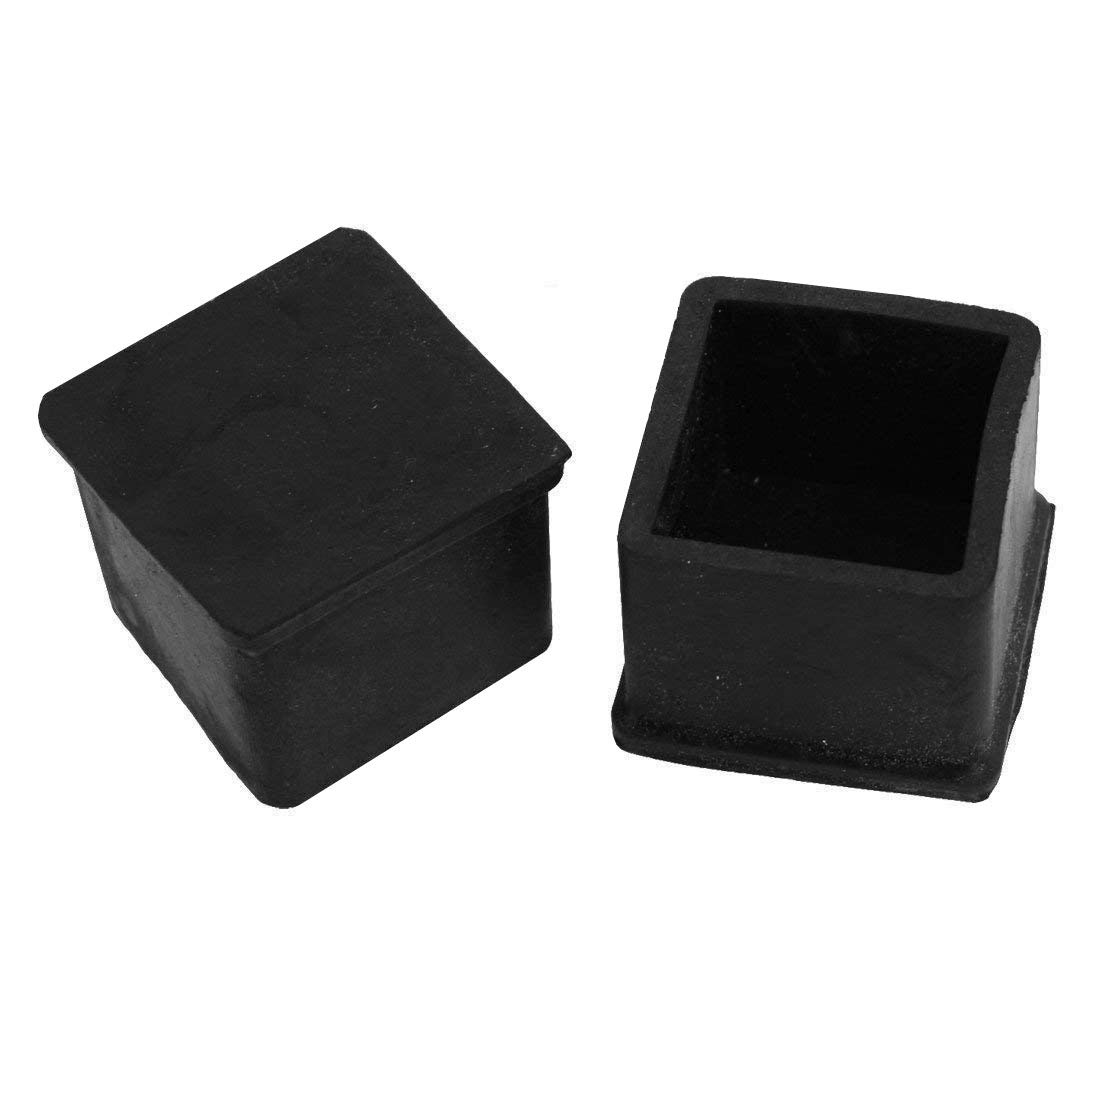 Fence Post Pipe Finishing Caps Insert Chair Glide 12 Pack MELIFE 1 1//4 Inch Square Tubing Plastic Plug 1.25 Anti Slip Chair Leg Caps Pipe Tubing End Cap